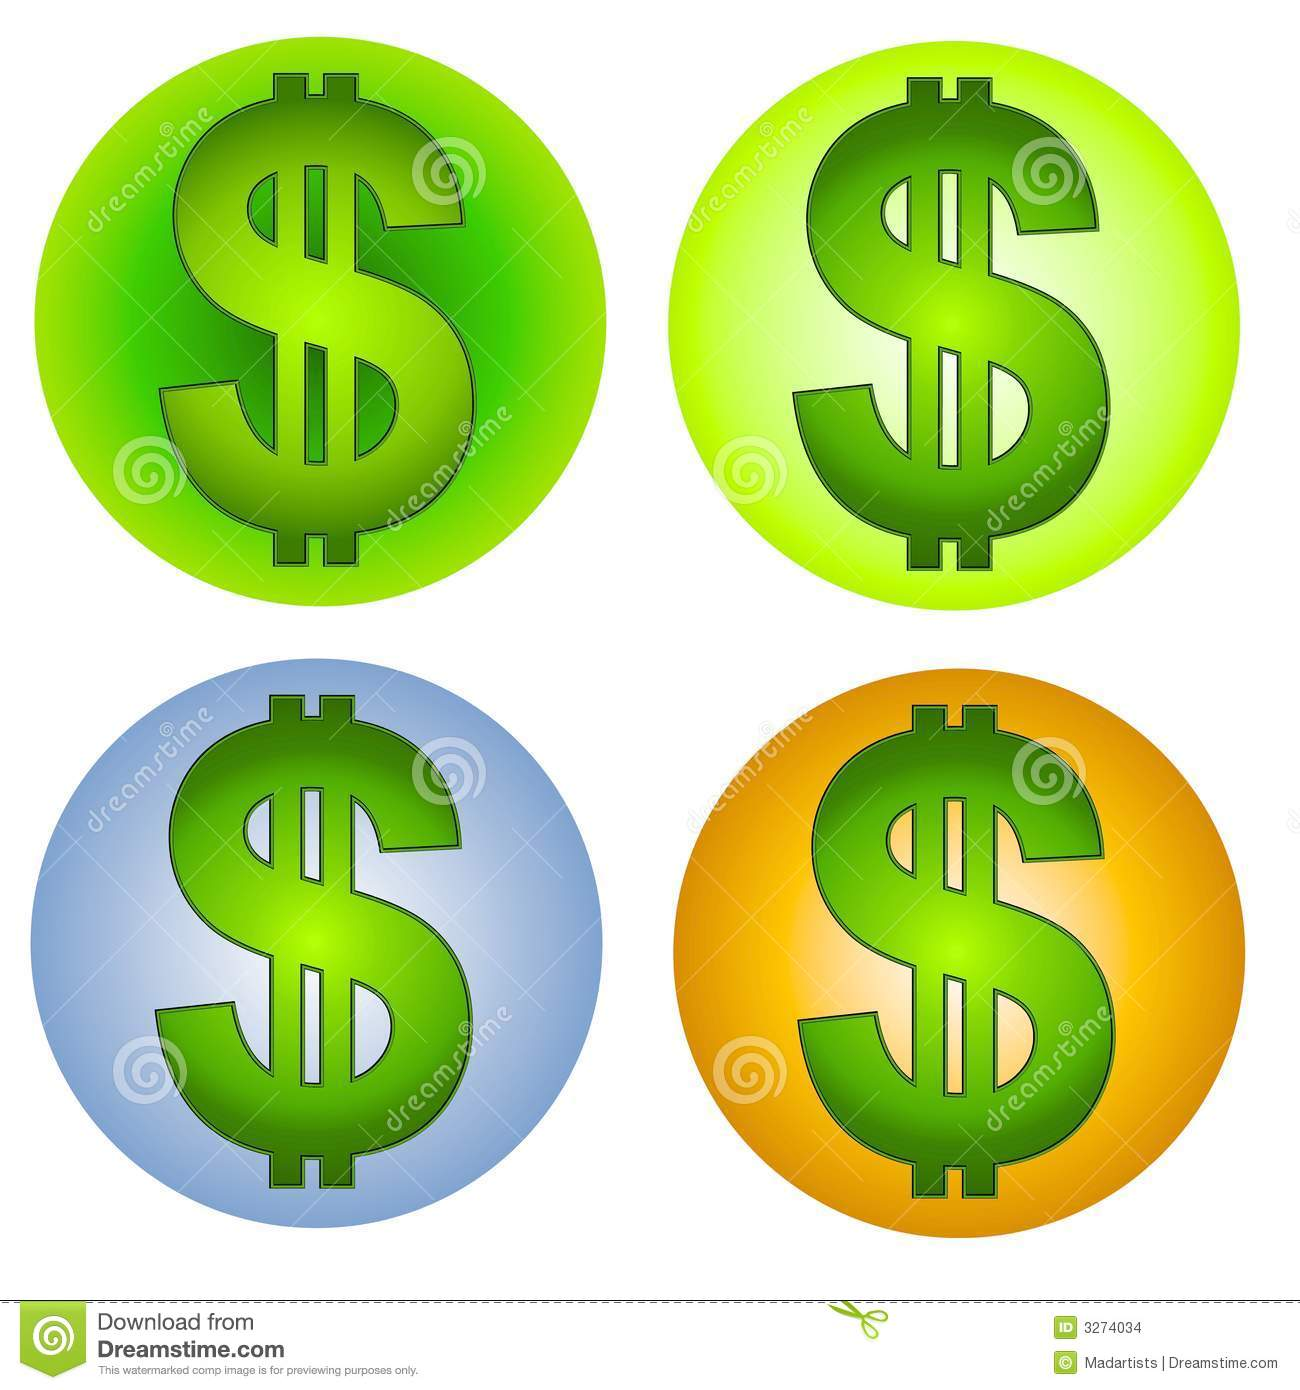 Free Stock Photos: Dollar Signs Money Clip Art 2 Picture. Image ...